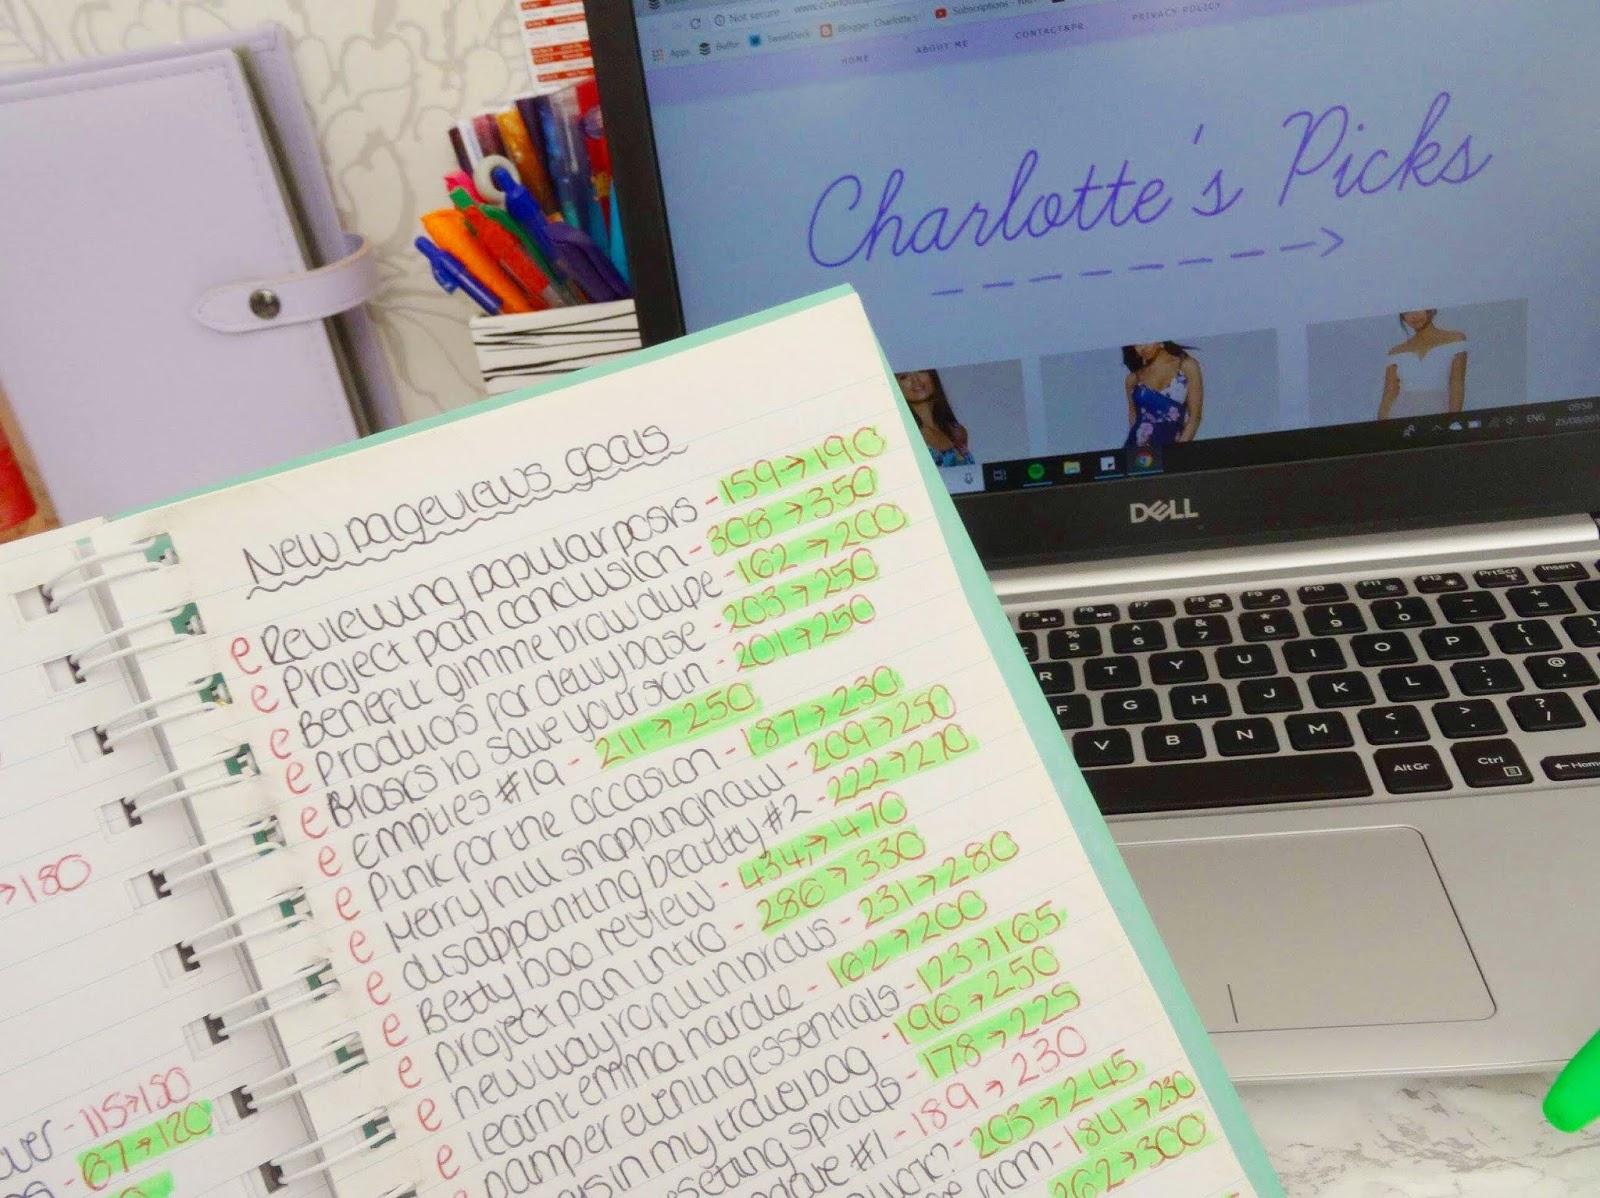 Page View Goals Set on Charlotte's Picks' Blog